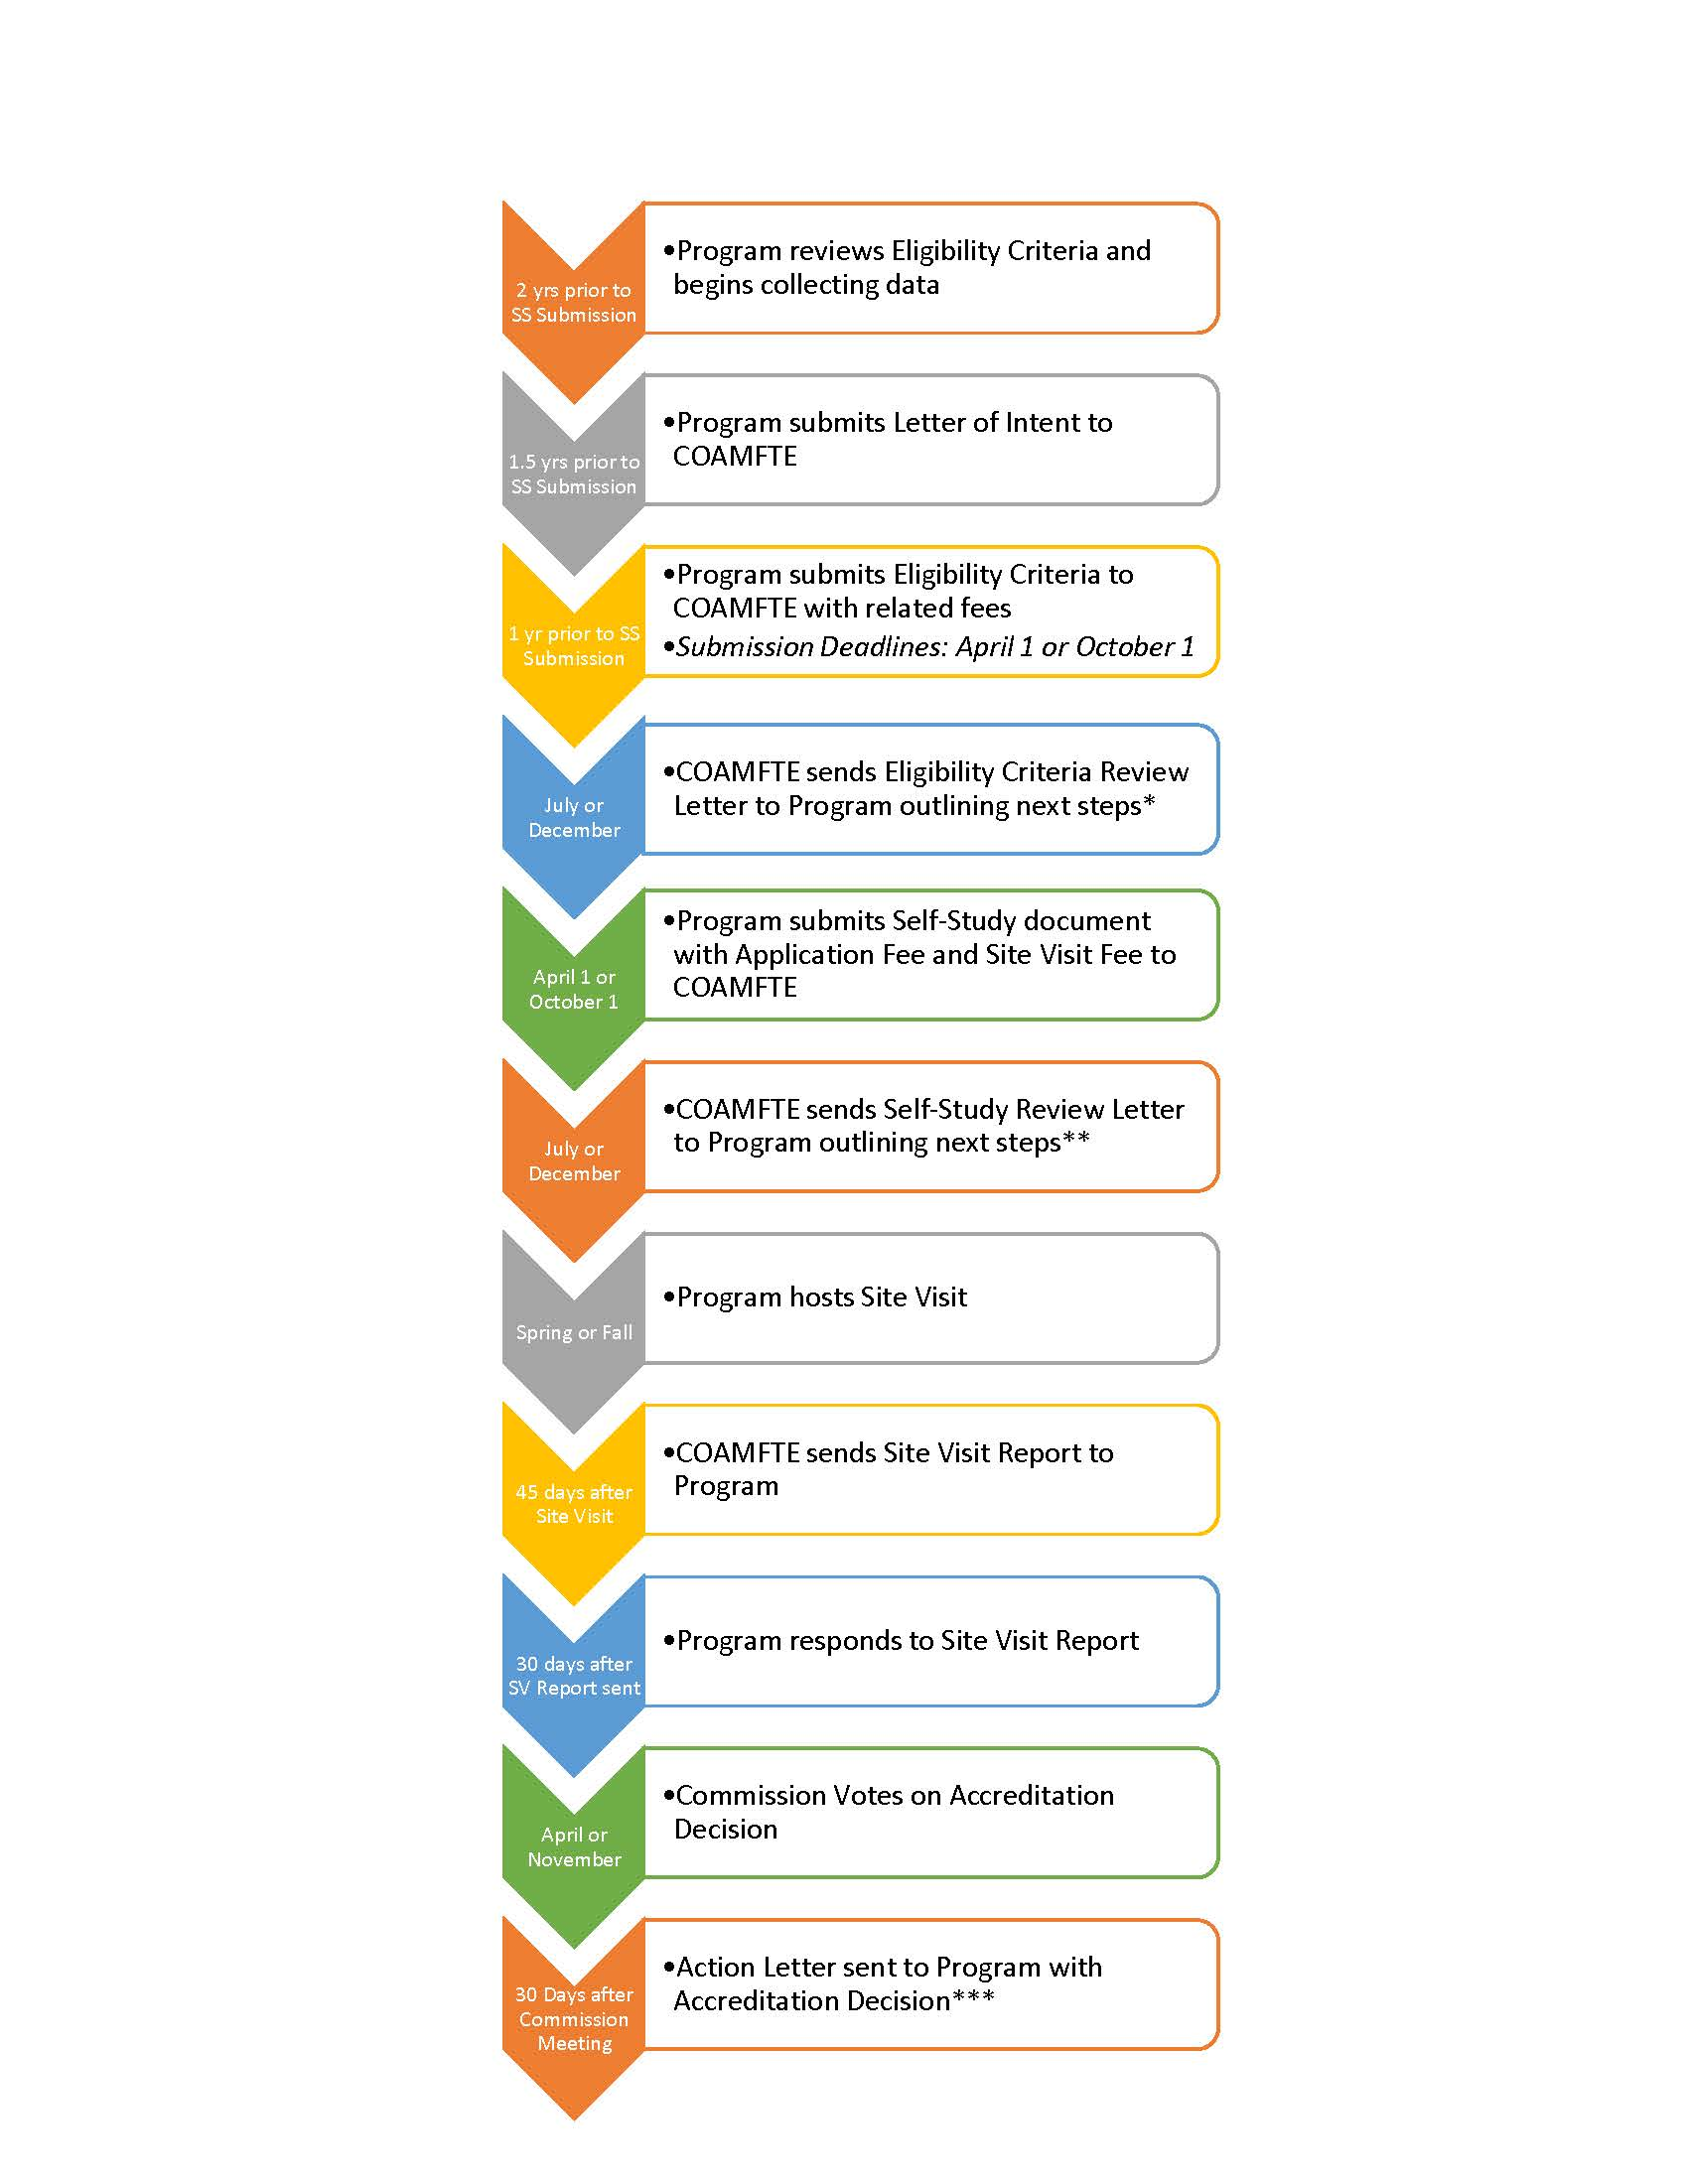 accreditation process timeline